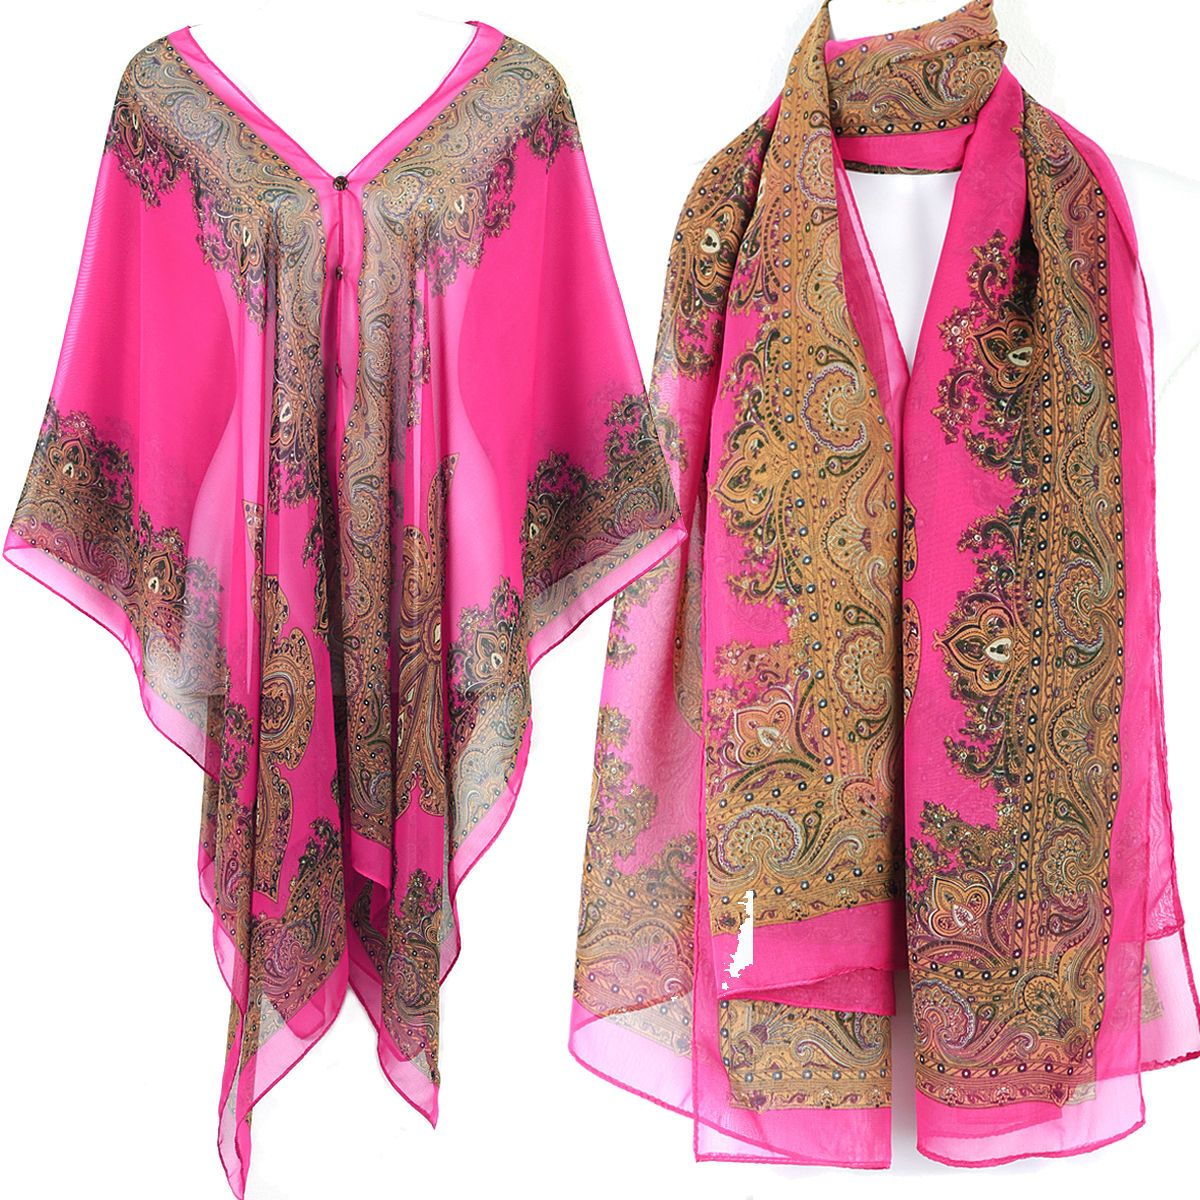 c2bd822ef5 Charm Kaftan Caftan Tunic Dress Wing Blouses Scarf Beach Cover Up Pink  Ts32P1